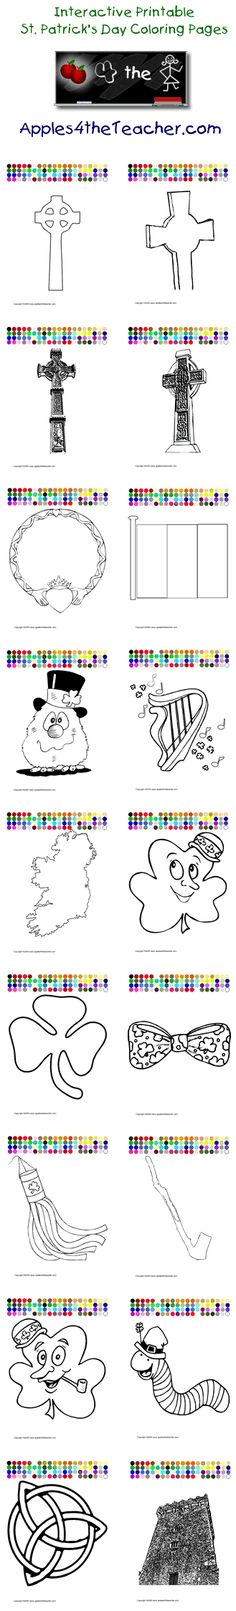 Apples4theteacher Coloring Pages : St patrick coloring page isn t it adorable saint